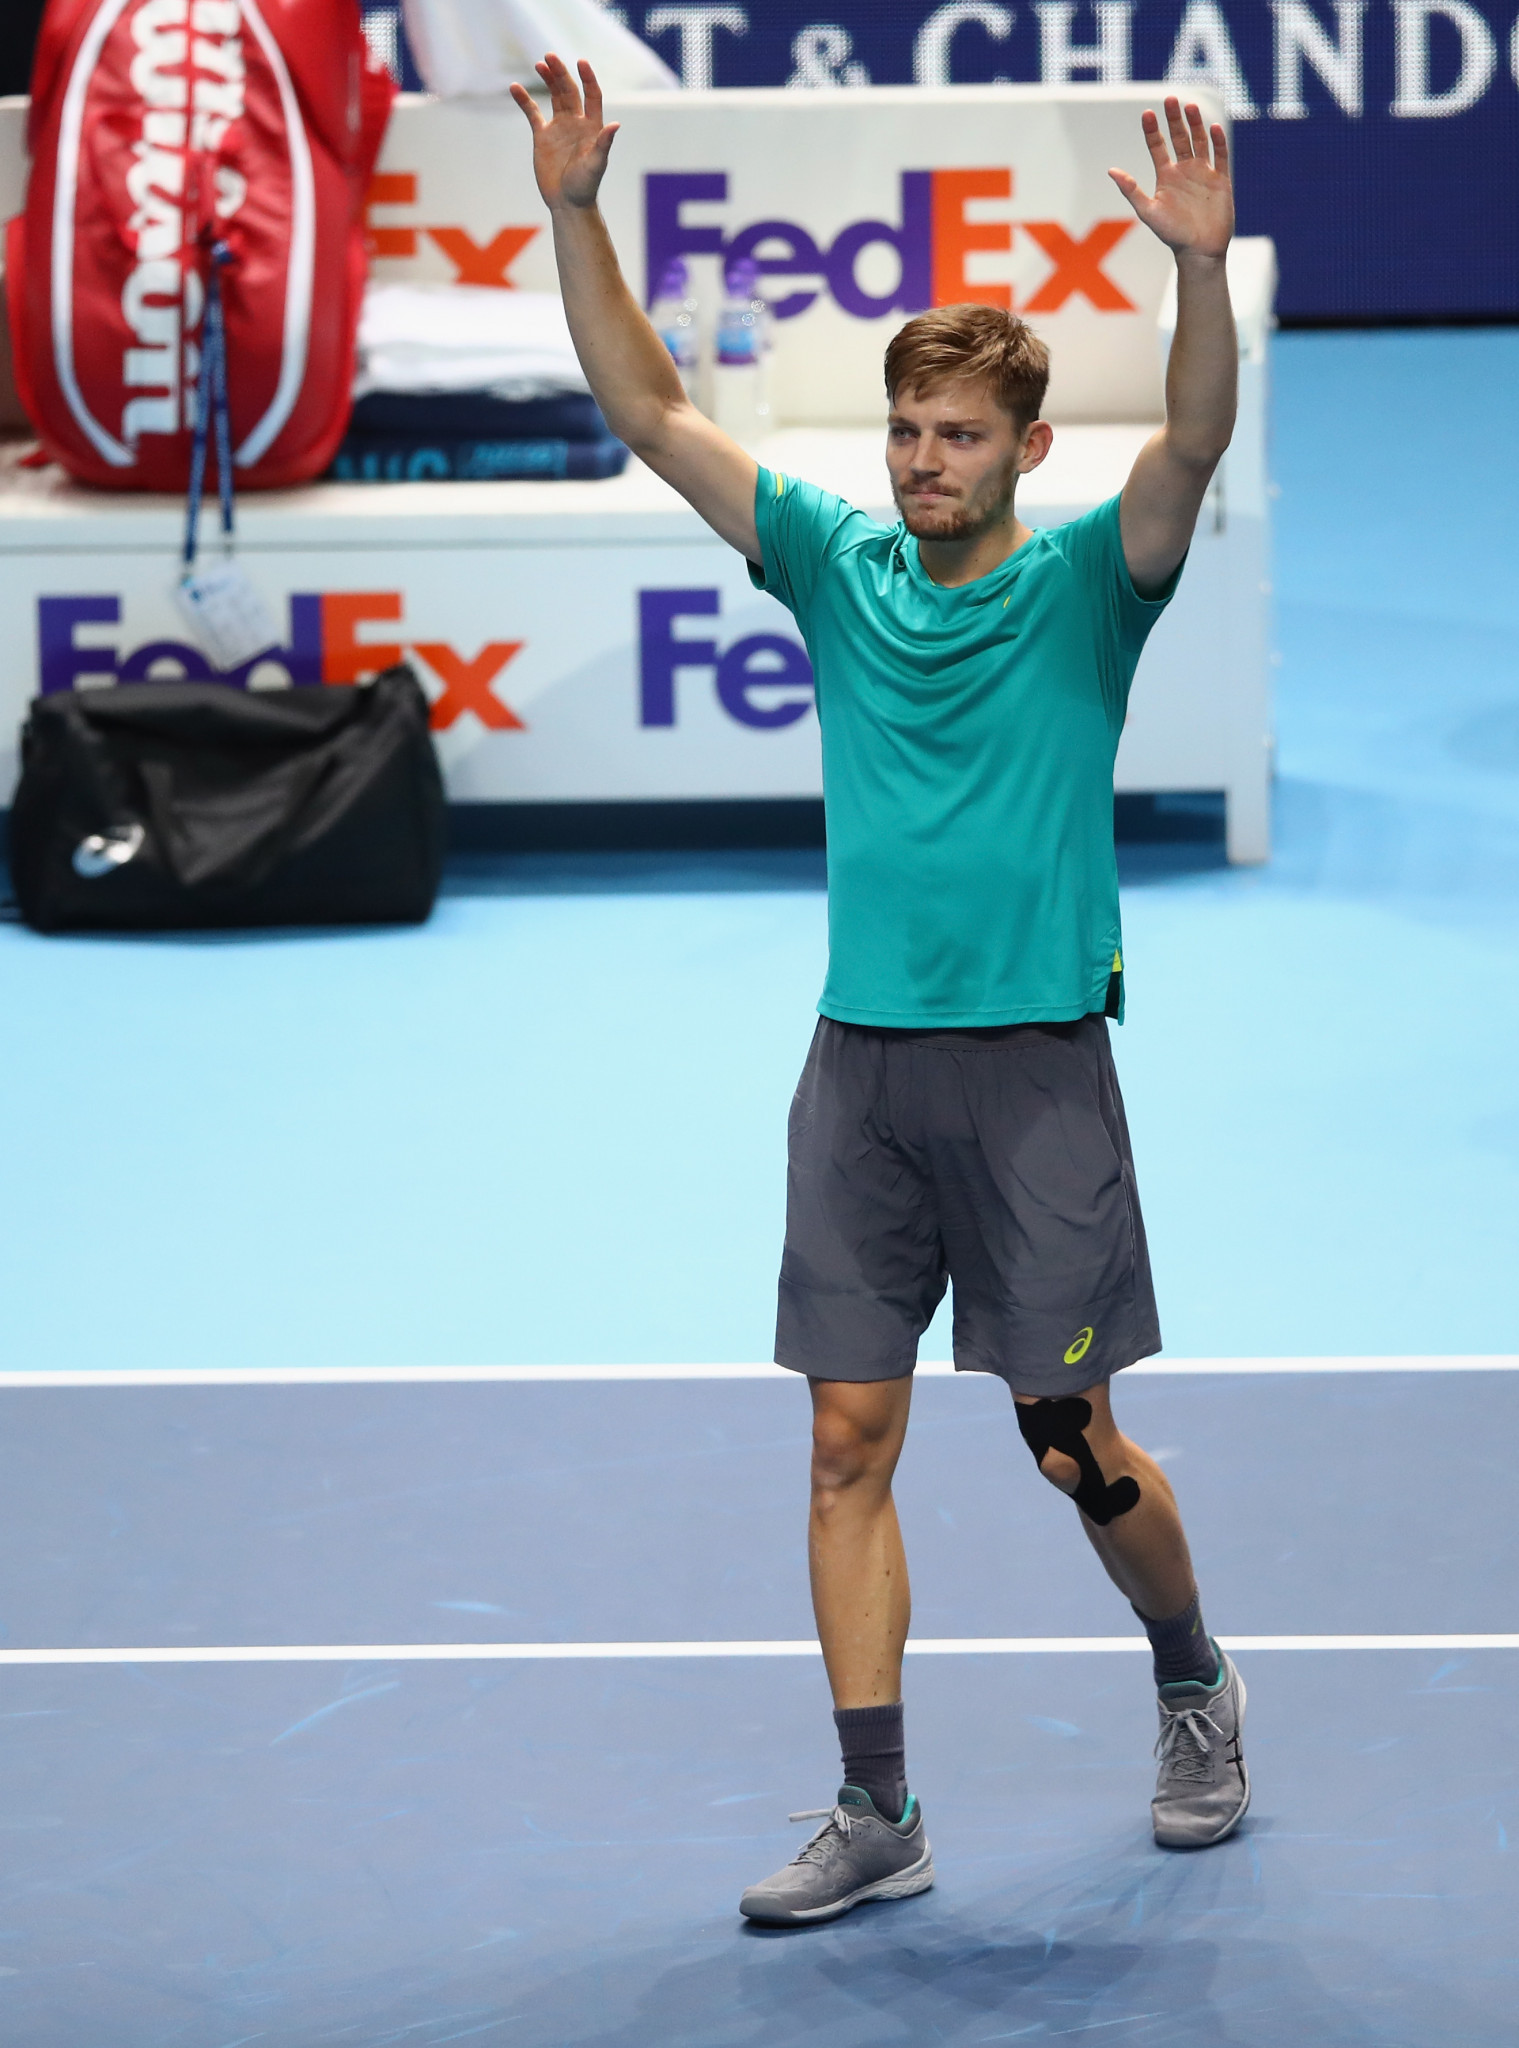 Shock win over Federer earns Goffin final place against Dimitrov at ATP World Tour Finals